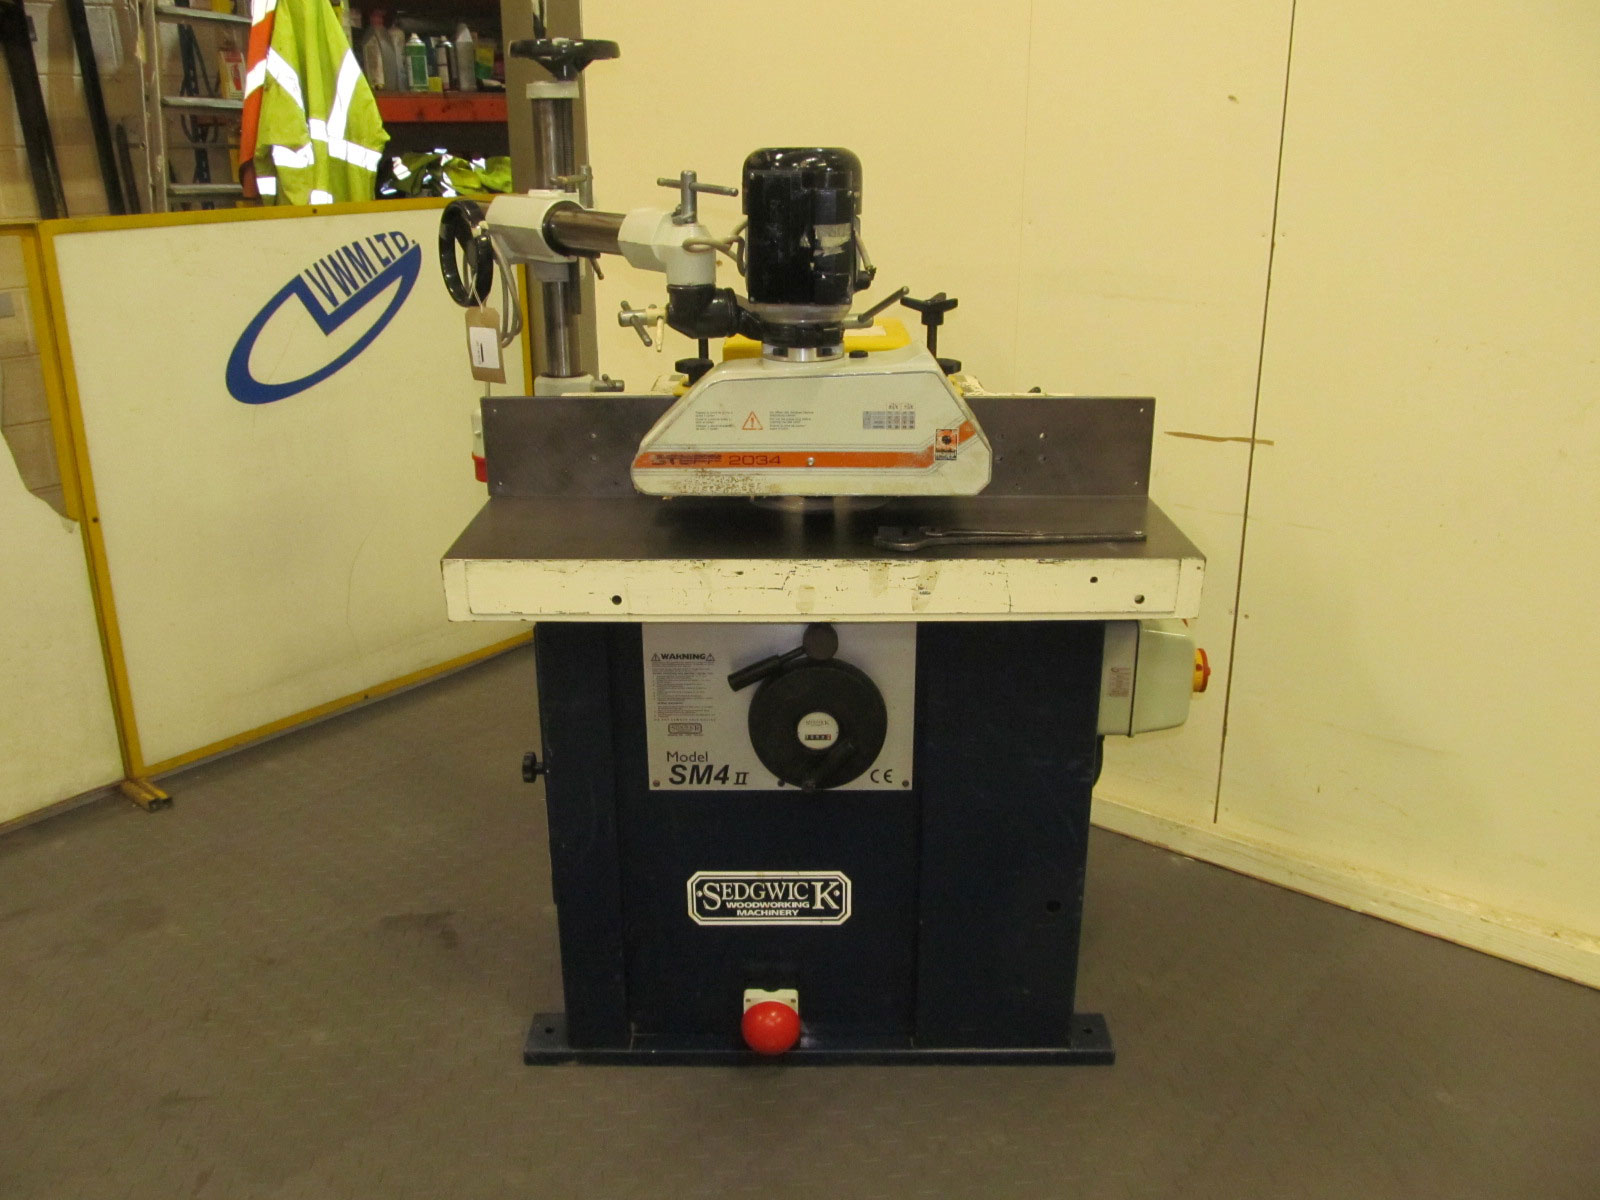 Sedgwick SM4 Mk2 spindle with Steff power feed unit